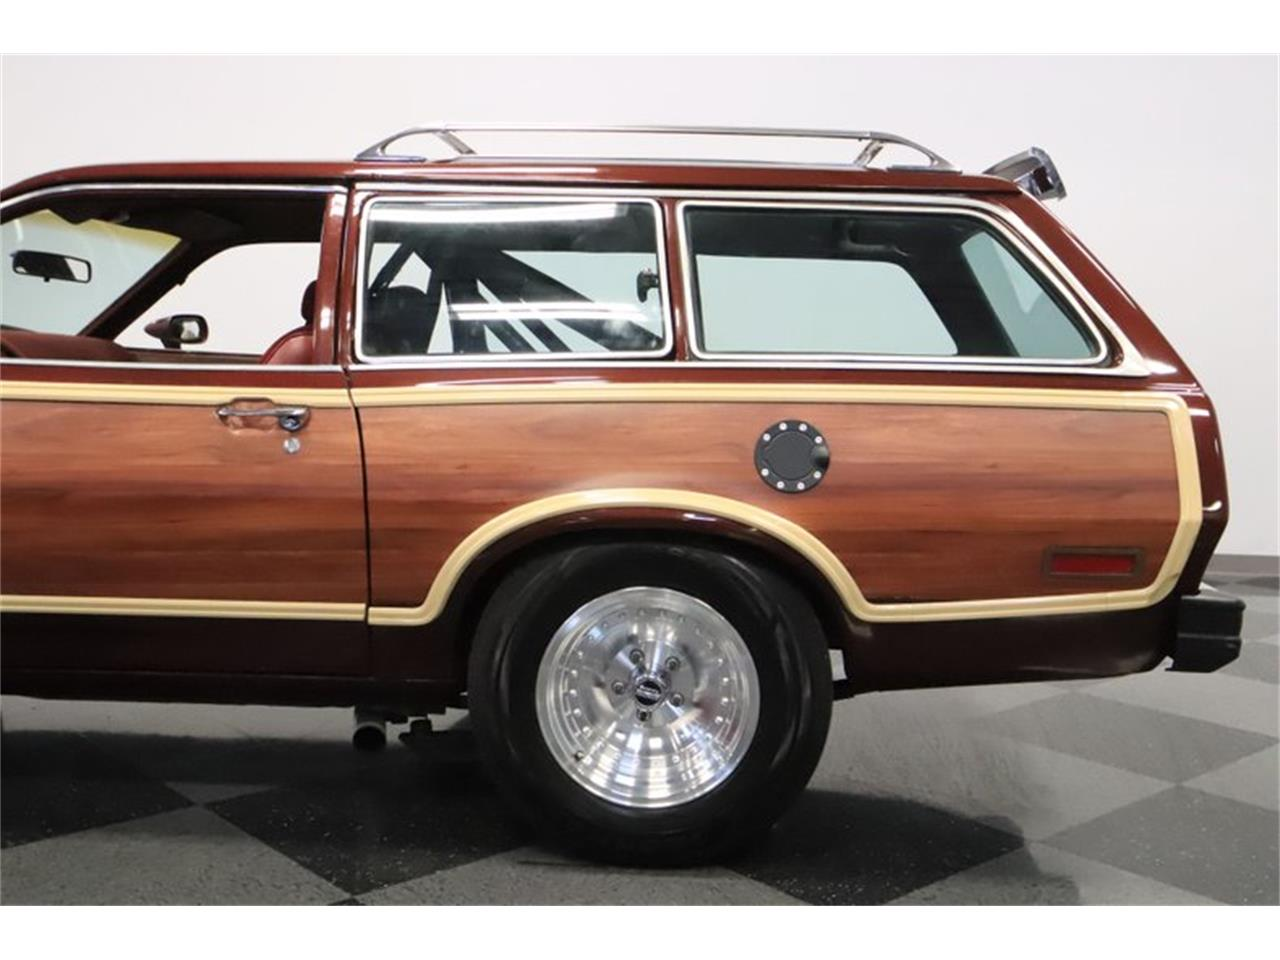 Large Picture of '80 Ford Pinto - $24,995.00 - QZK7